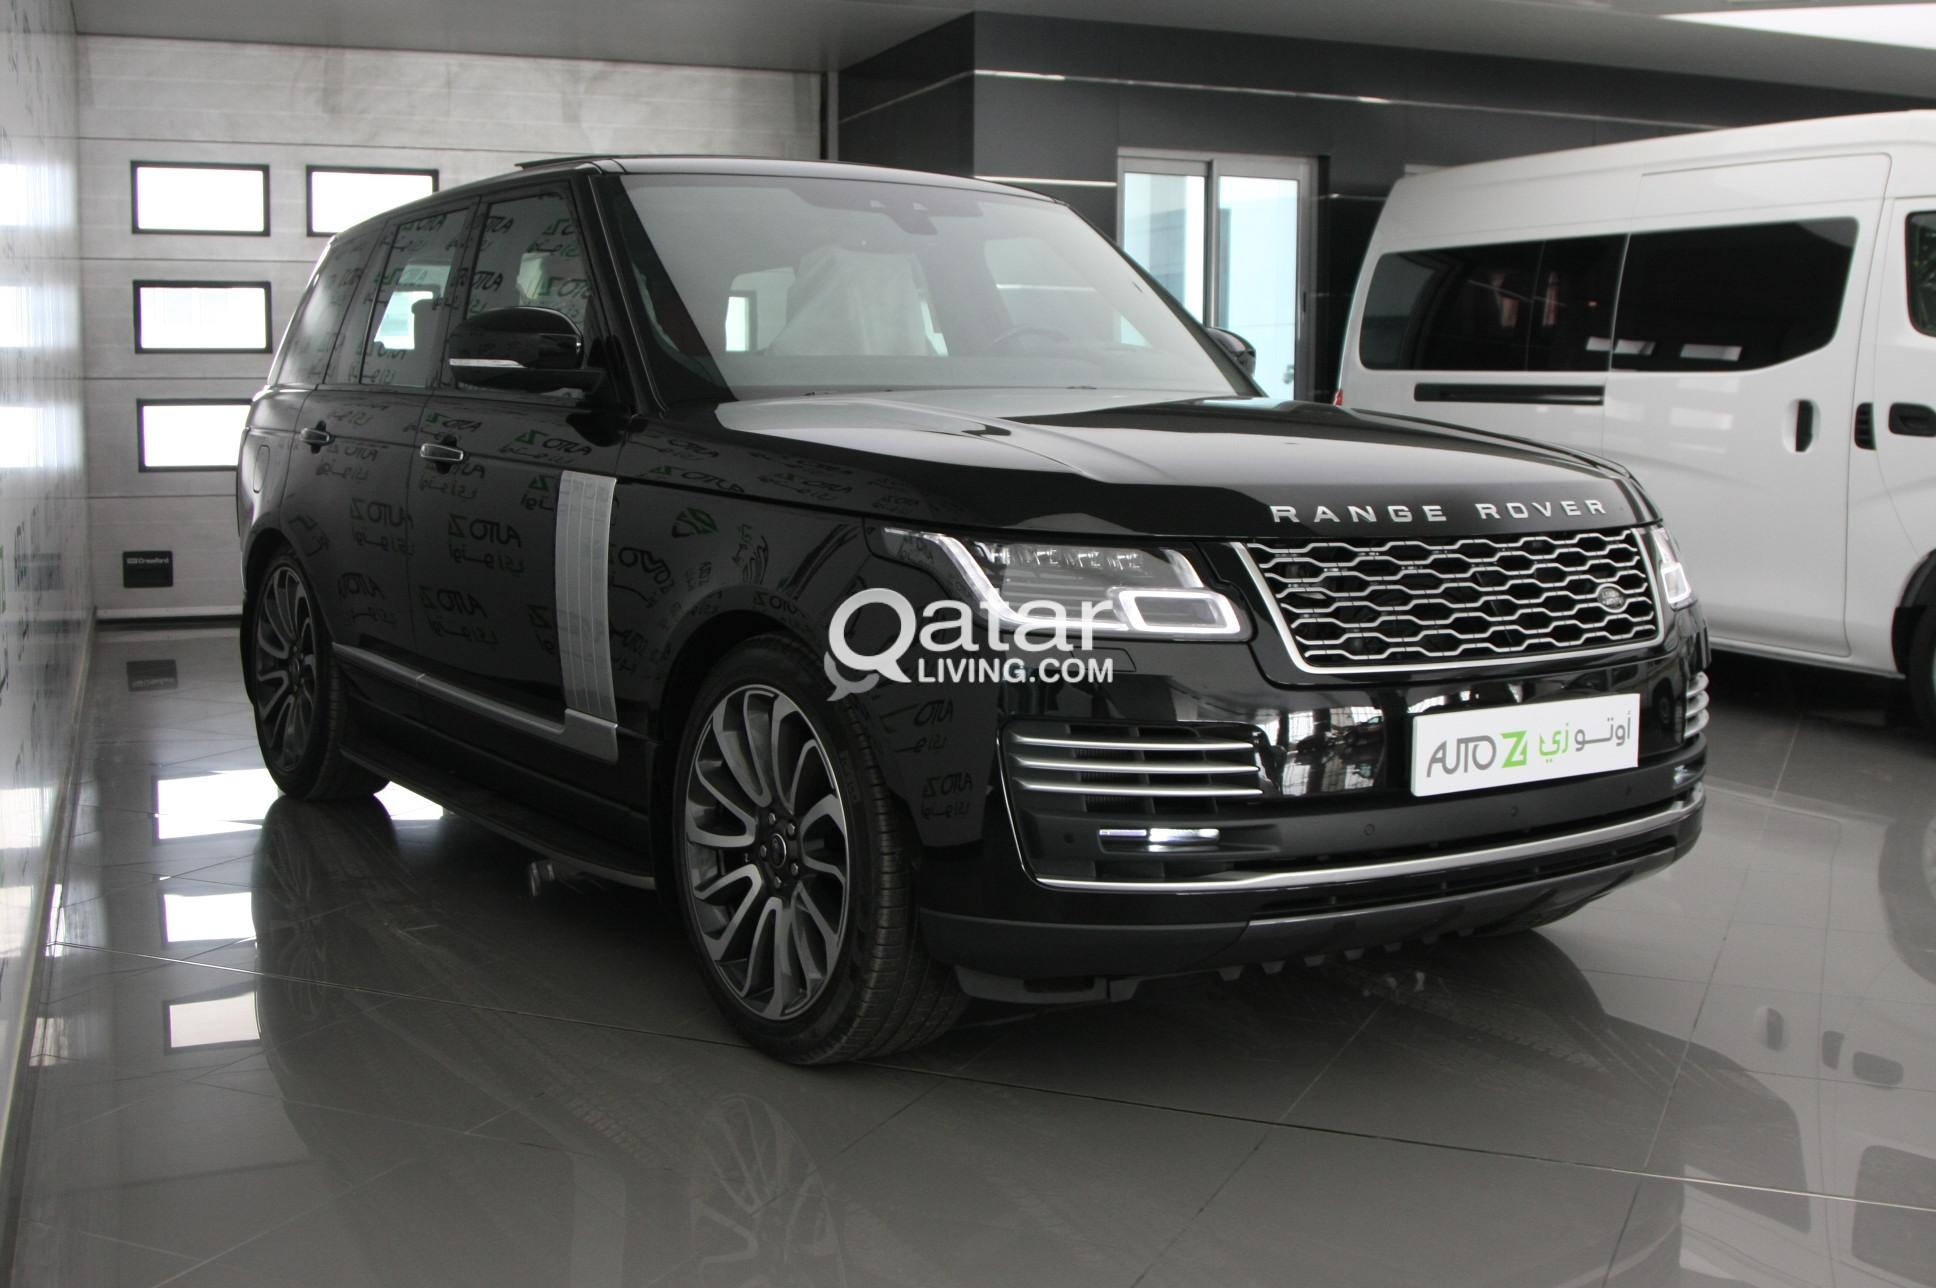 Range Rover L322 Autobiography >> Land Rover Range Rover Vogue Autobiography 2018 | Qatar Living